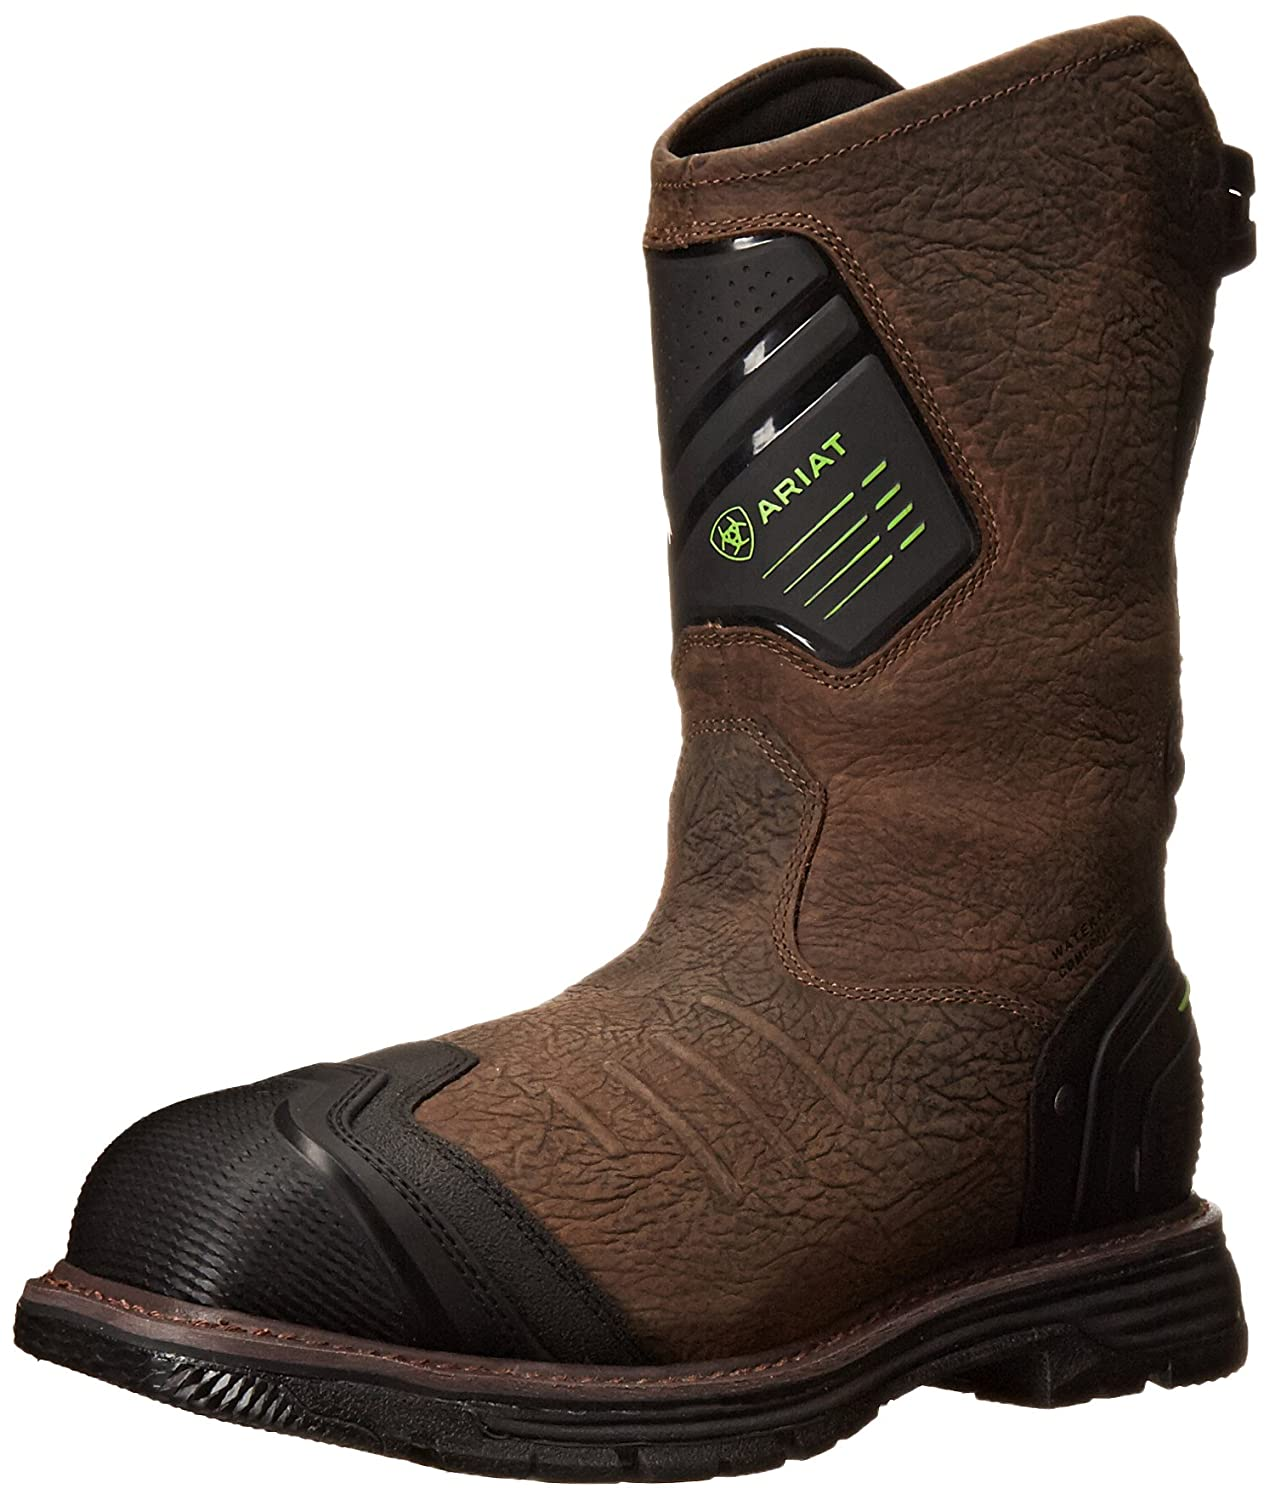 Ariat メンズ B00U9ZYU70 9.5 2E US|Bruin Brown Bruin Brown 9.5 2E US